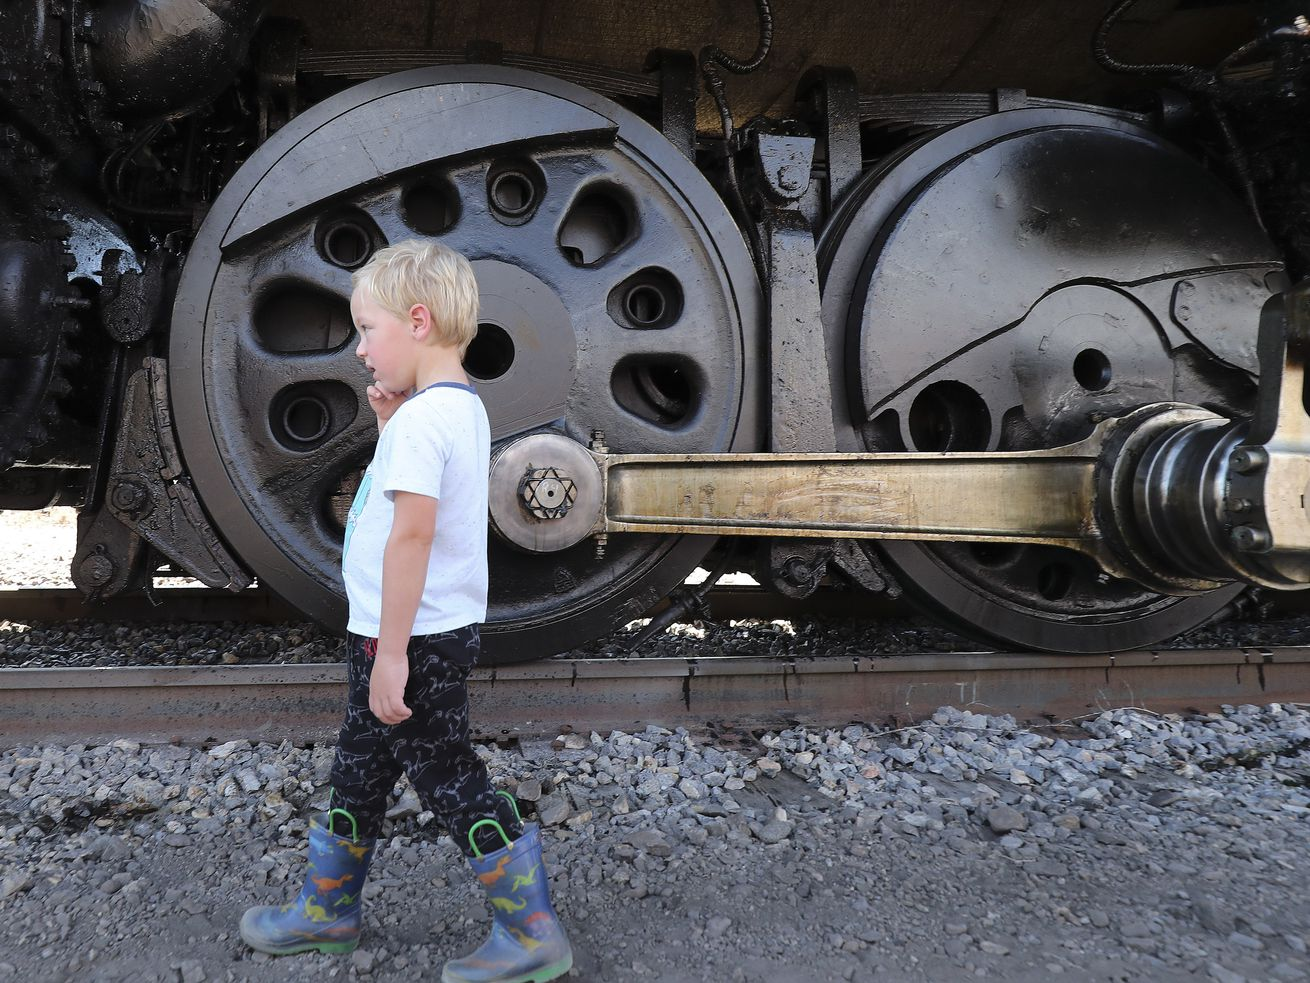 Photos: Train buffs get another chance to check out Union Pacific's Big Boy steam engine